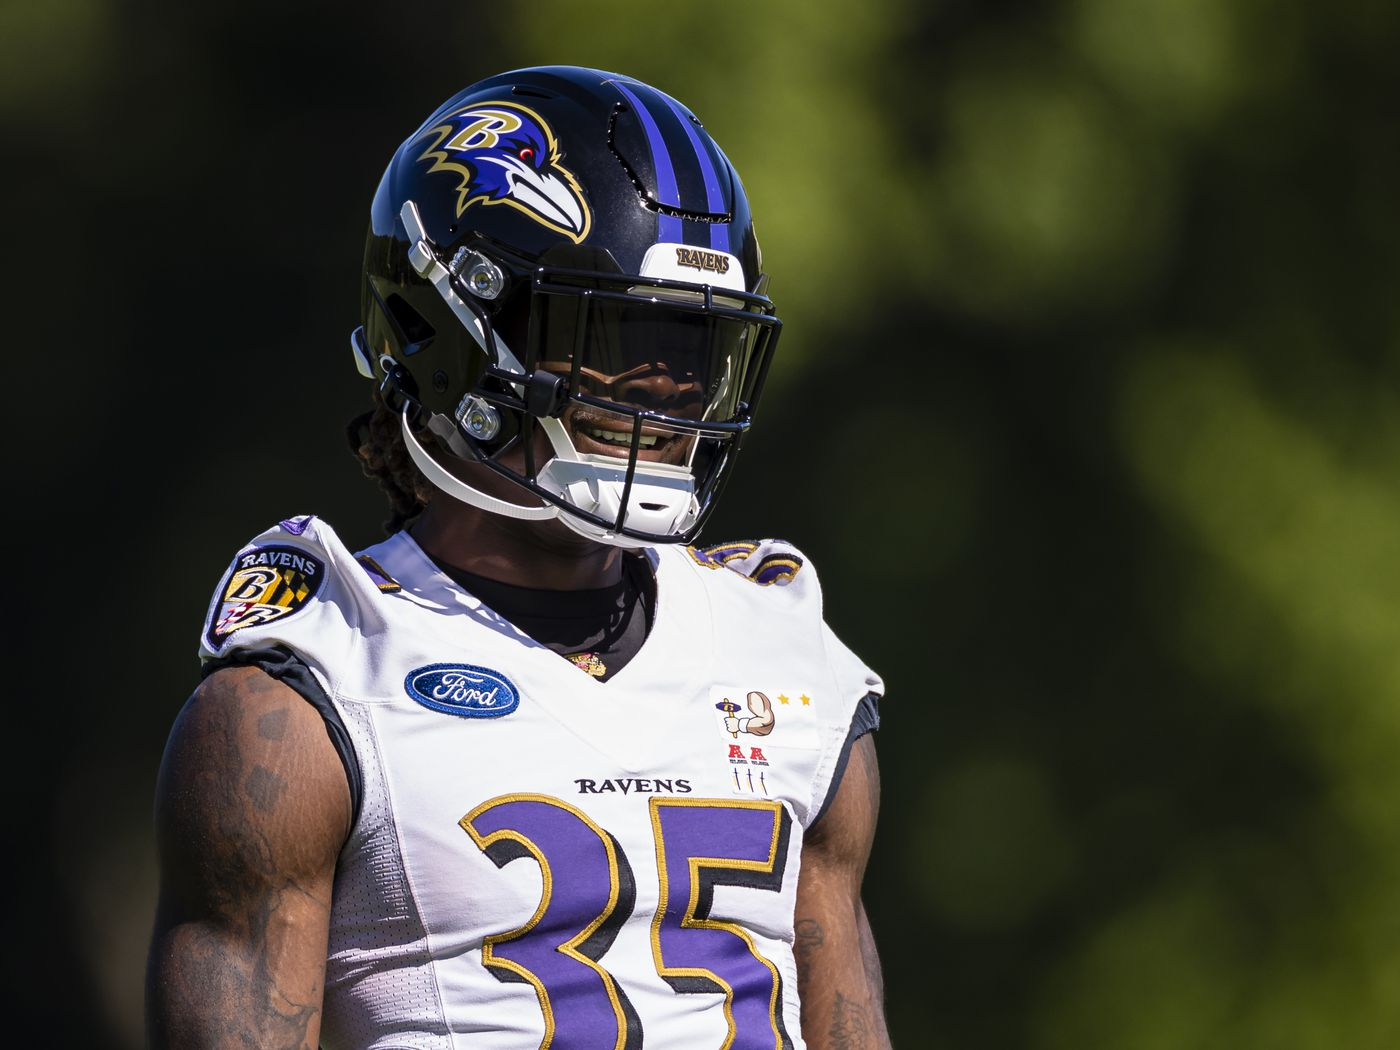 Gus Edwards Predictions Prop Bet Picks And Why He Ll Go Over On Rushing Yards Under On Tds In 2021 Nfl Season Draftkings Nation